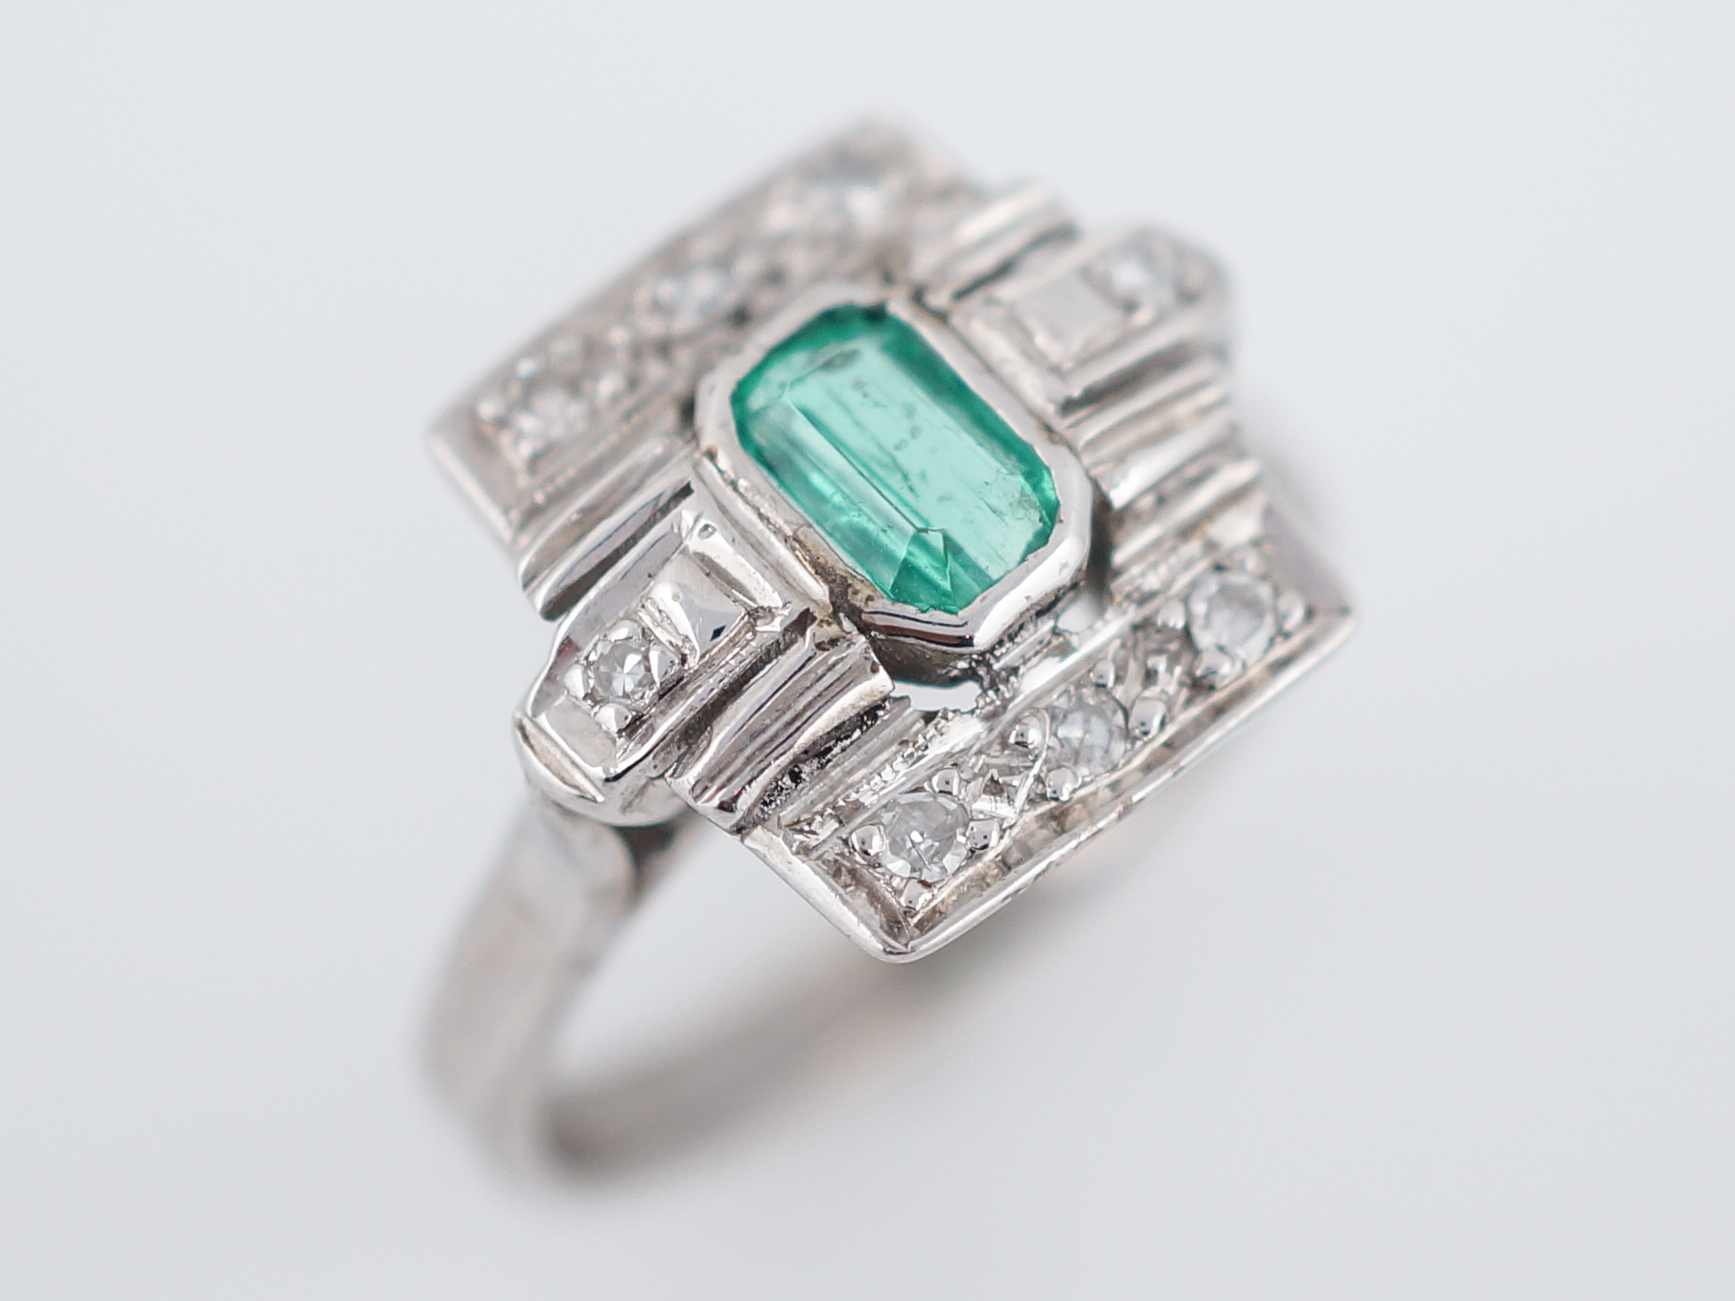 harry d cut flawless winston ring emerald raine product turgeon